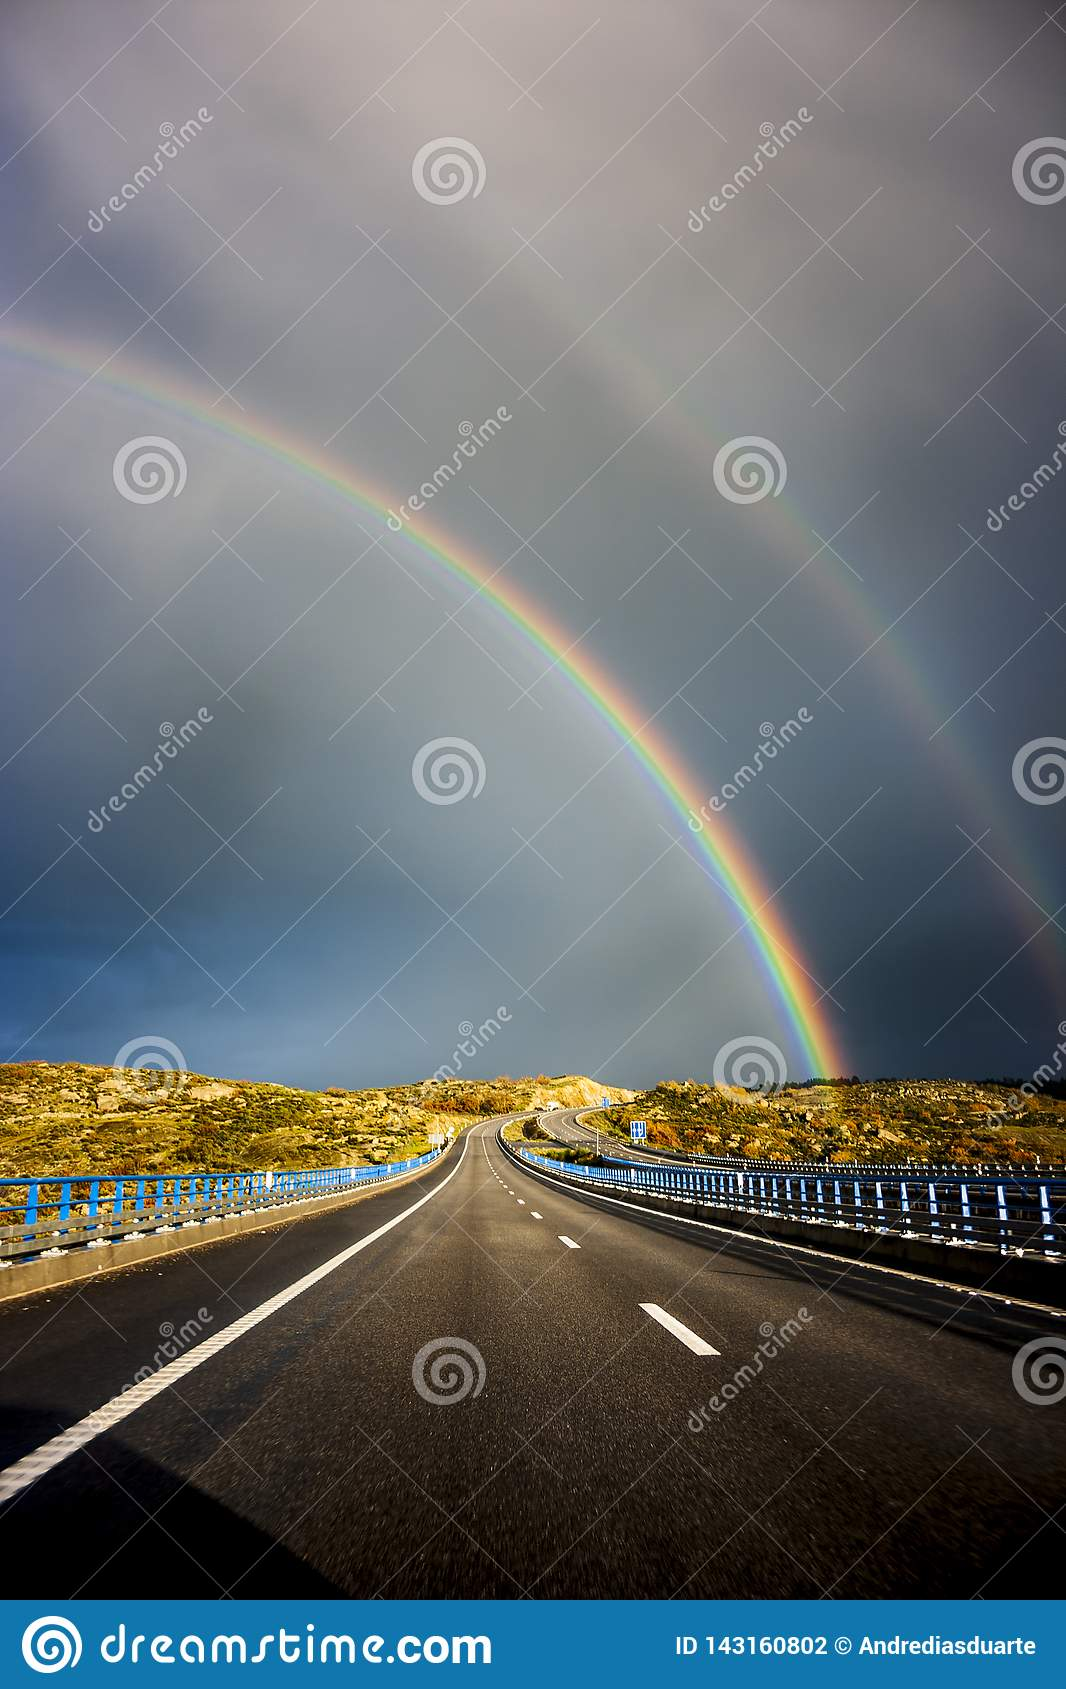 Double Rainbow over the highway